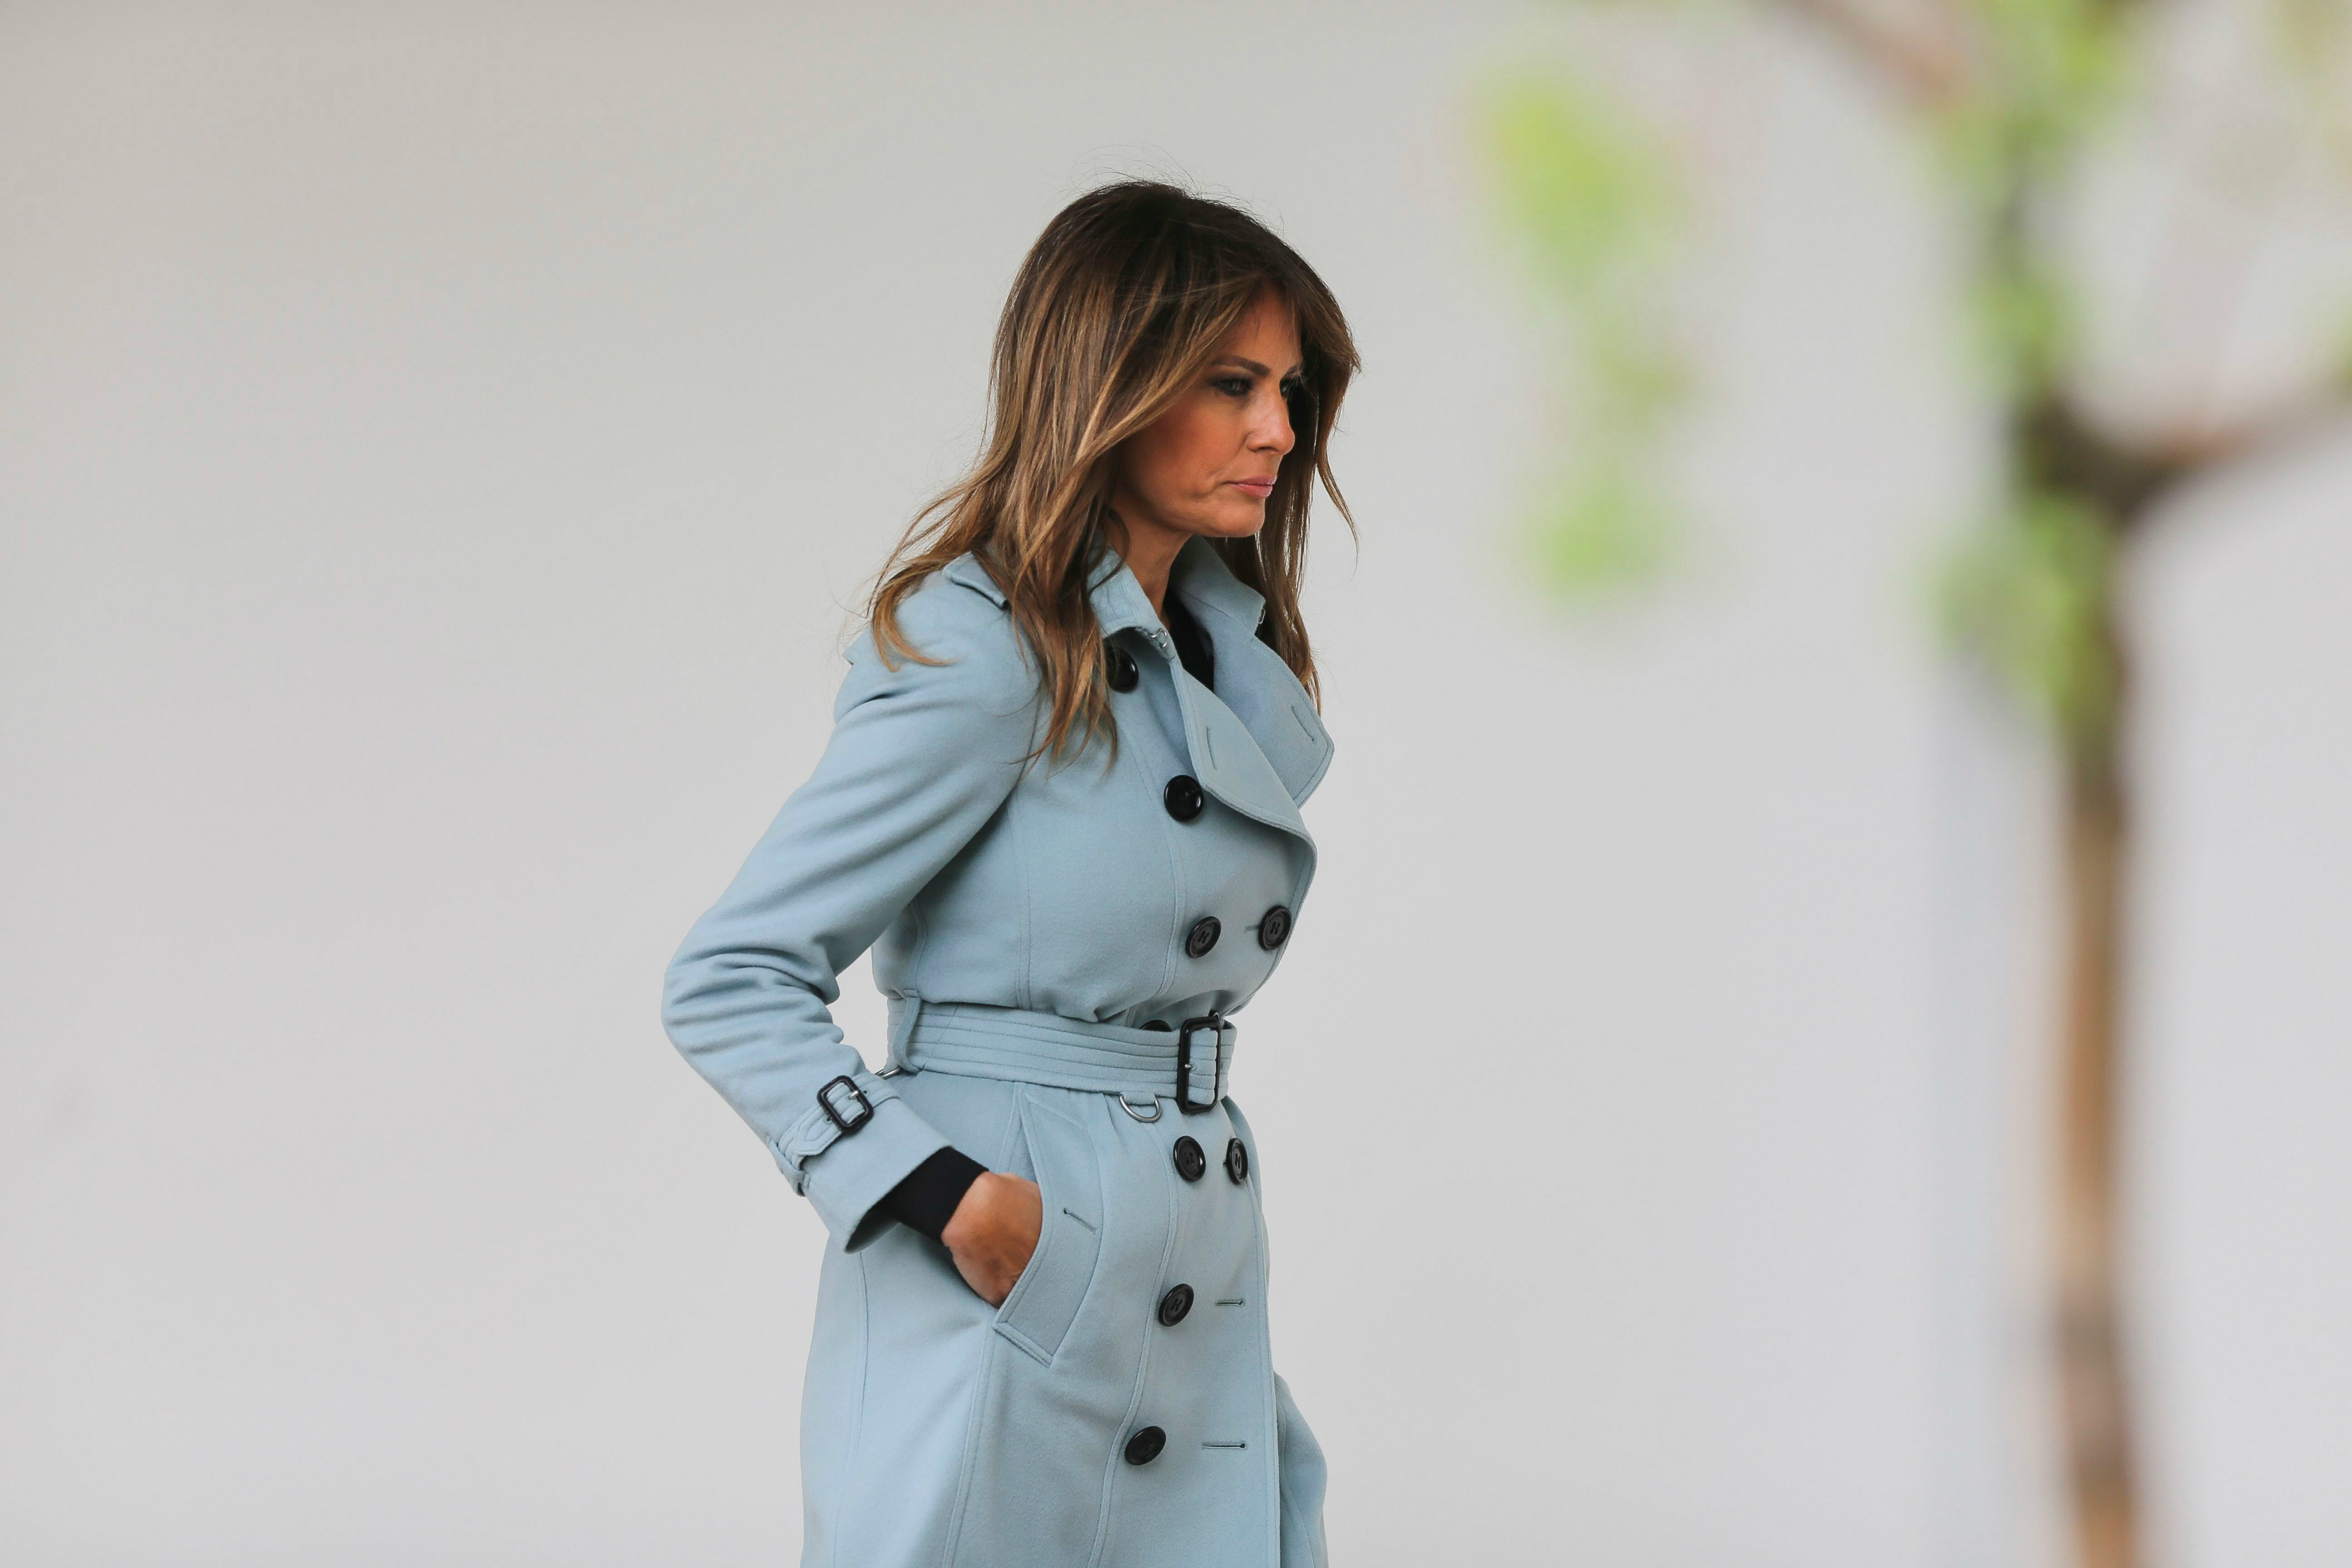 These recent photographs of Melania Trump are going viral for a very surprising reason